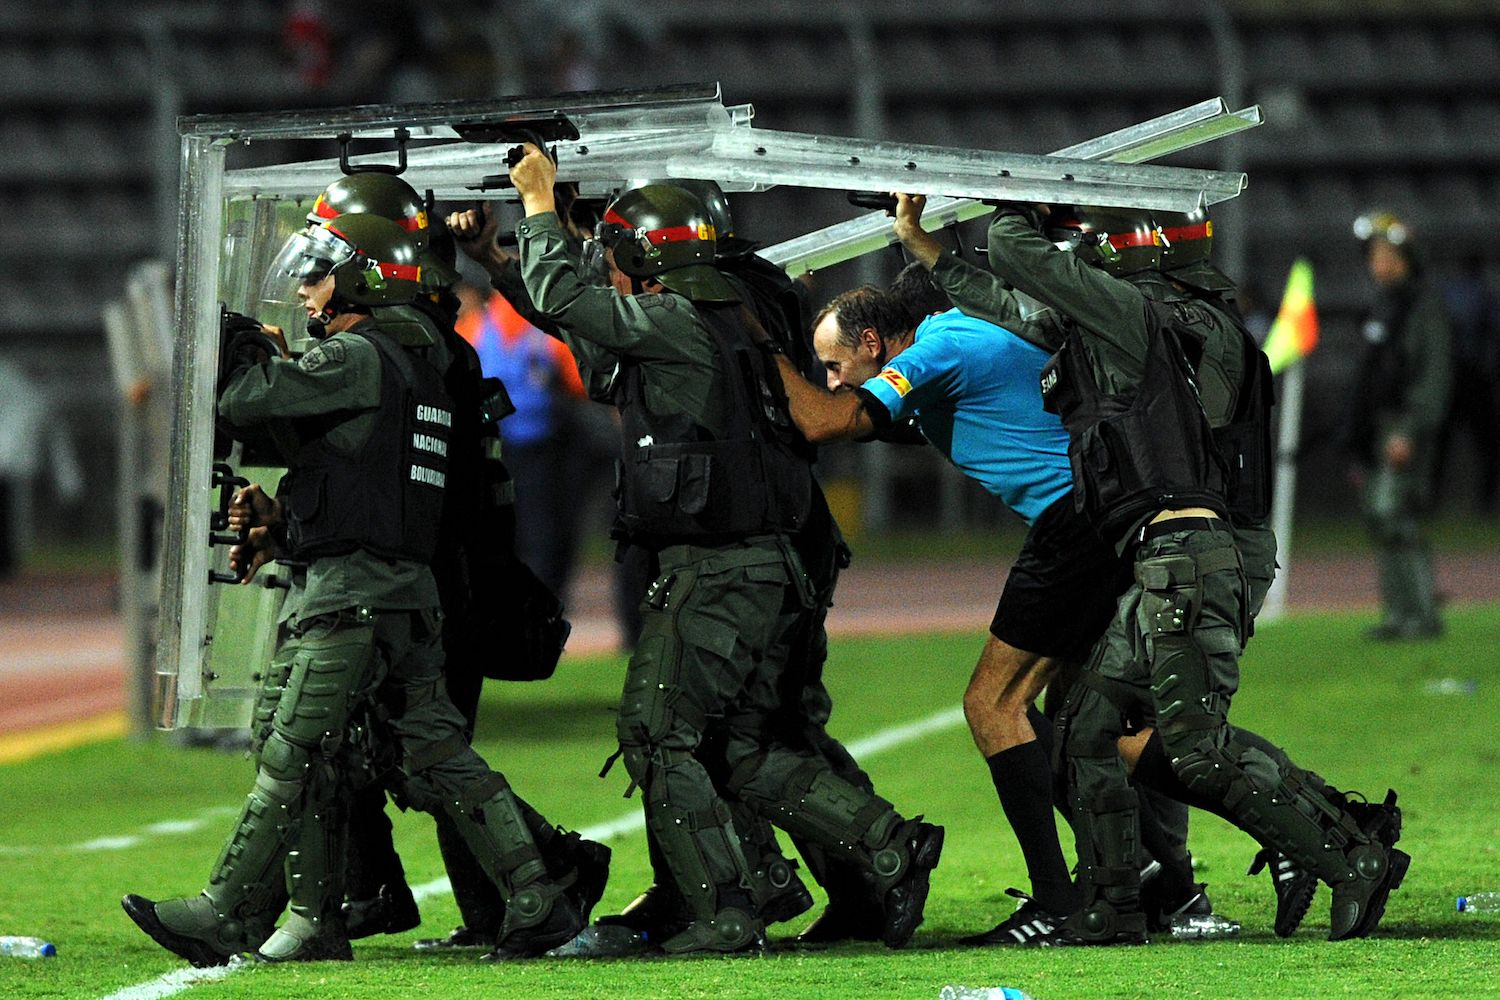 TOPSHOT - Members of the national guard escort Uruguayan referee Daniel Fedorczuk as he leaves the field during a Copa Libertadores football match between Colombian Santa Fe and Venezuela's Tachira at the Polideportivo de Pueblo Nuevo stadium in San Cristobal, Venezuela on February 1, 2018. Venezuelan Tachira supporters disapproved Fedorczuk performance during the match and hurled objects onto the pitch.  / AFP PHOTO / GEORGE CASTELLANOS        (Photo credit should read GEORGE CASTELLANOS/AFP/Getty Images)